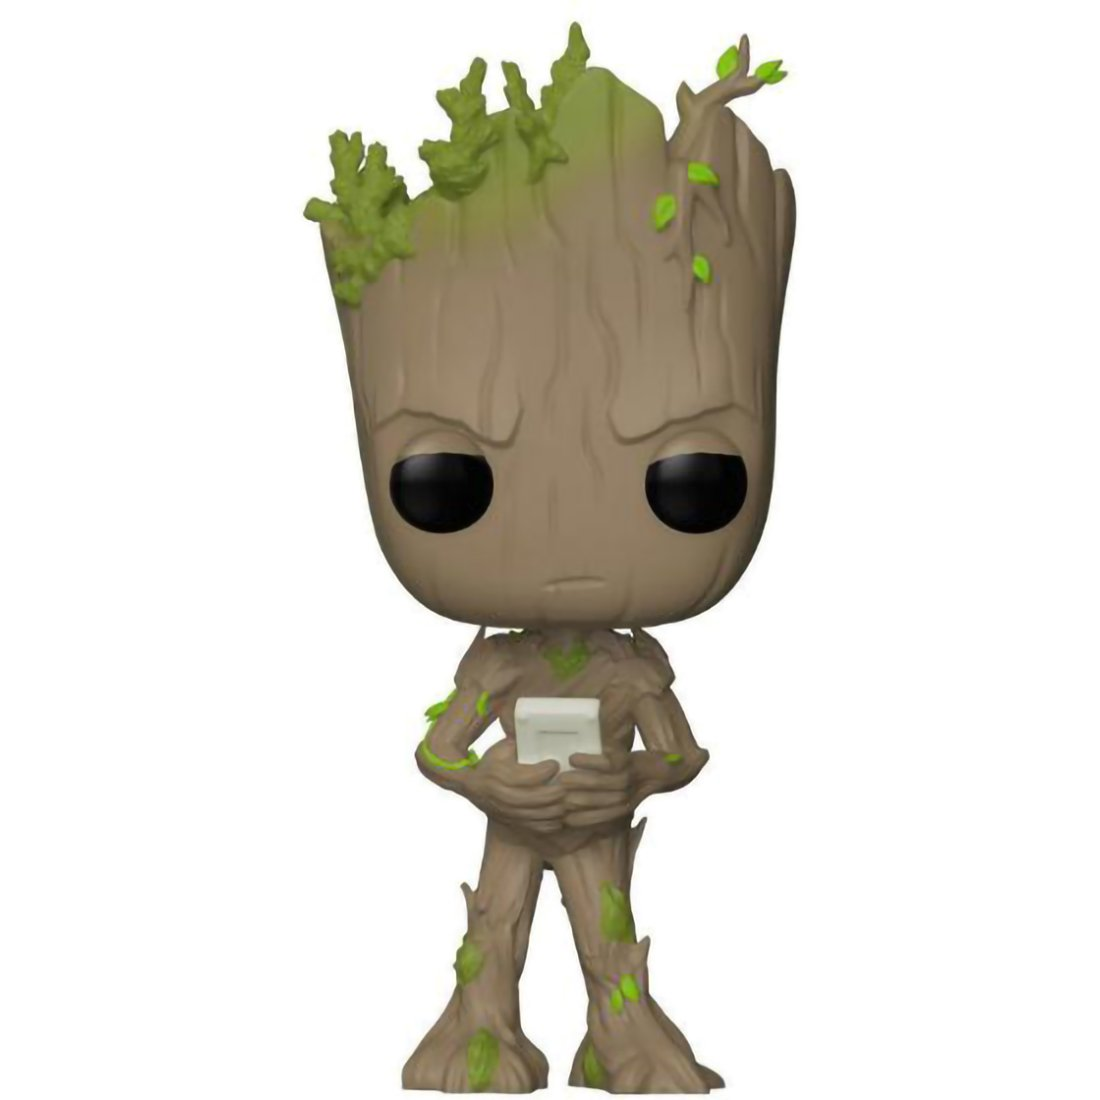 BCC9PP06 Funko Groot POP Toys R Us Exclusive 1 Official Marvel Trading Card Bundle Infinity War Vinyl Figure Marvel x Avengers #297